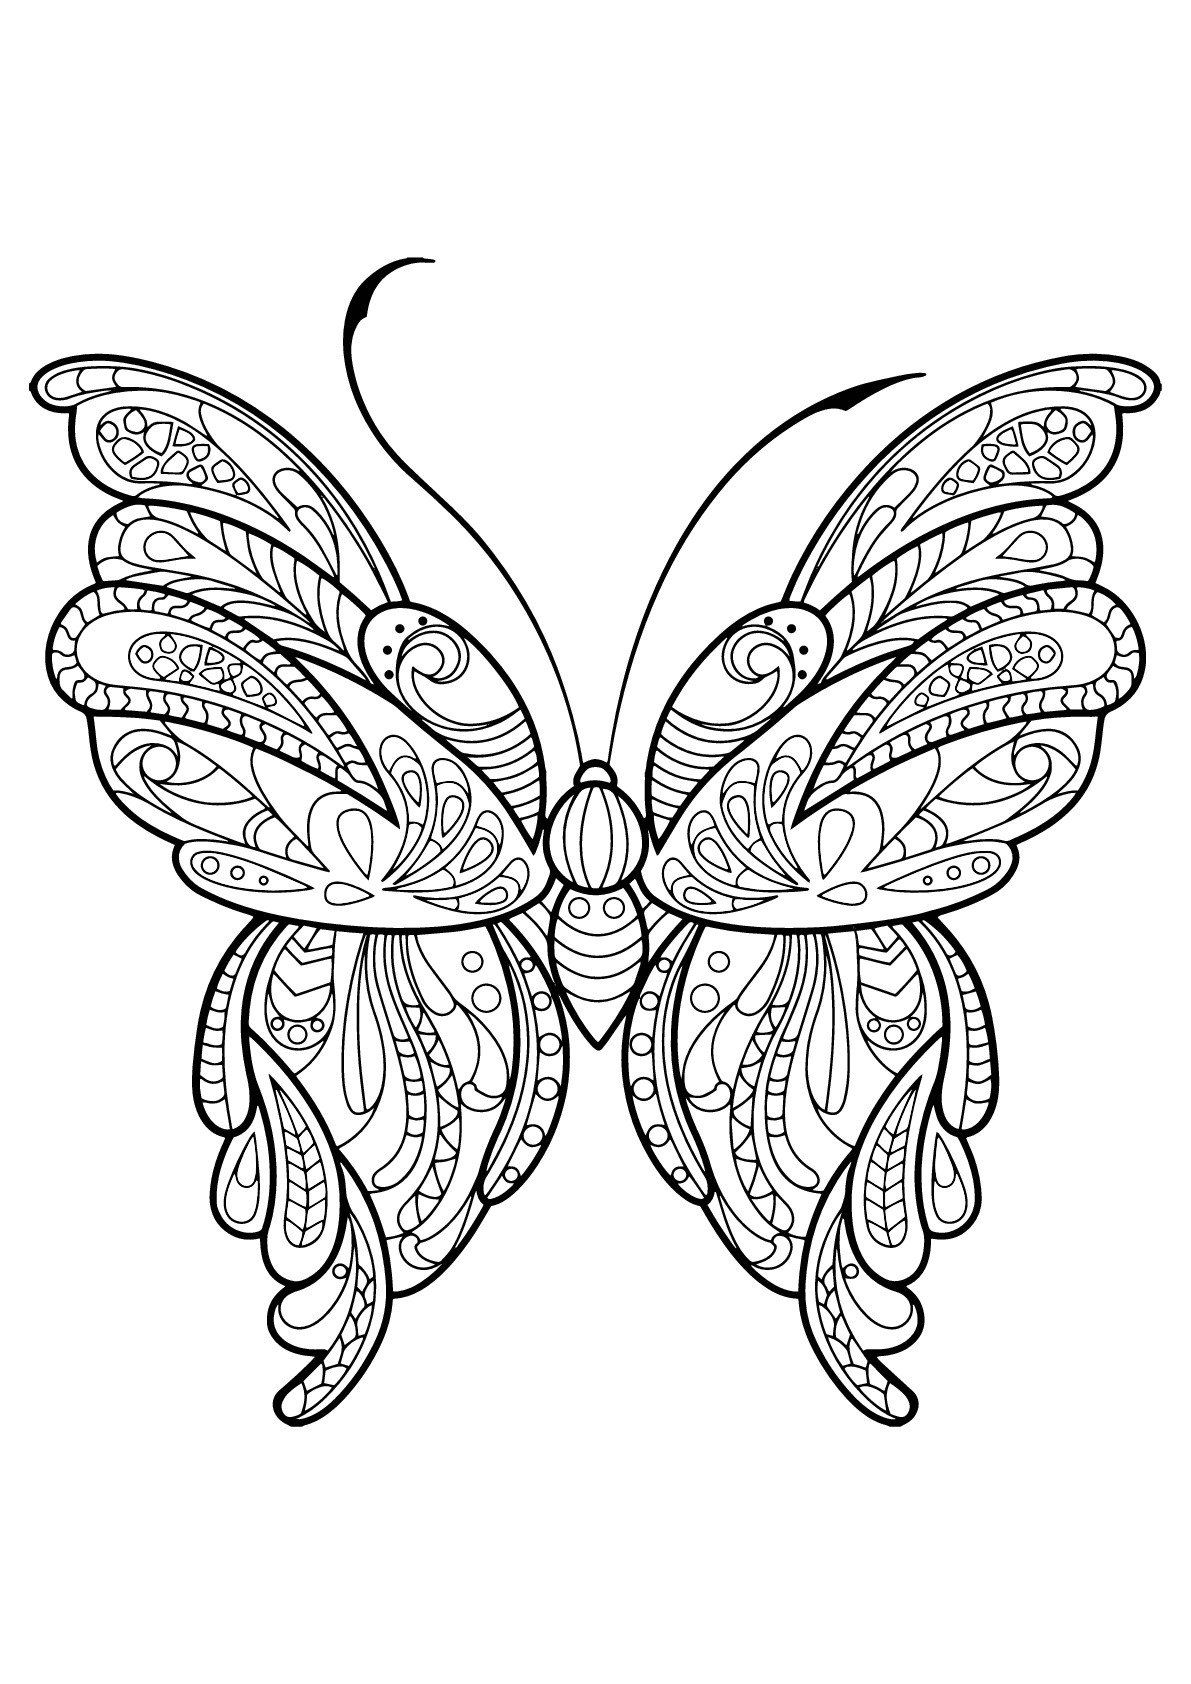 Butterfly Coloring Pages For Kids Coloring Pages Butterflies Free To Color For Kids Butterfly Coloring Page Butterfly Pictures To Color Animal Coloring Pages [ 1684 x 1191 Pixel ]